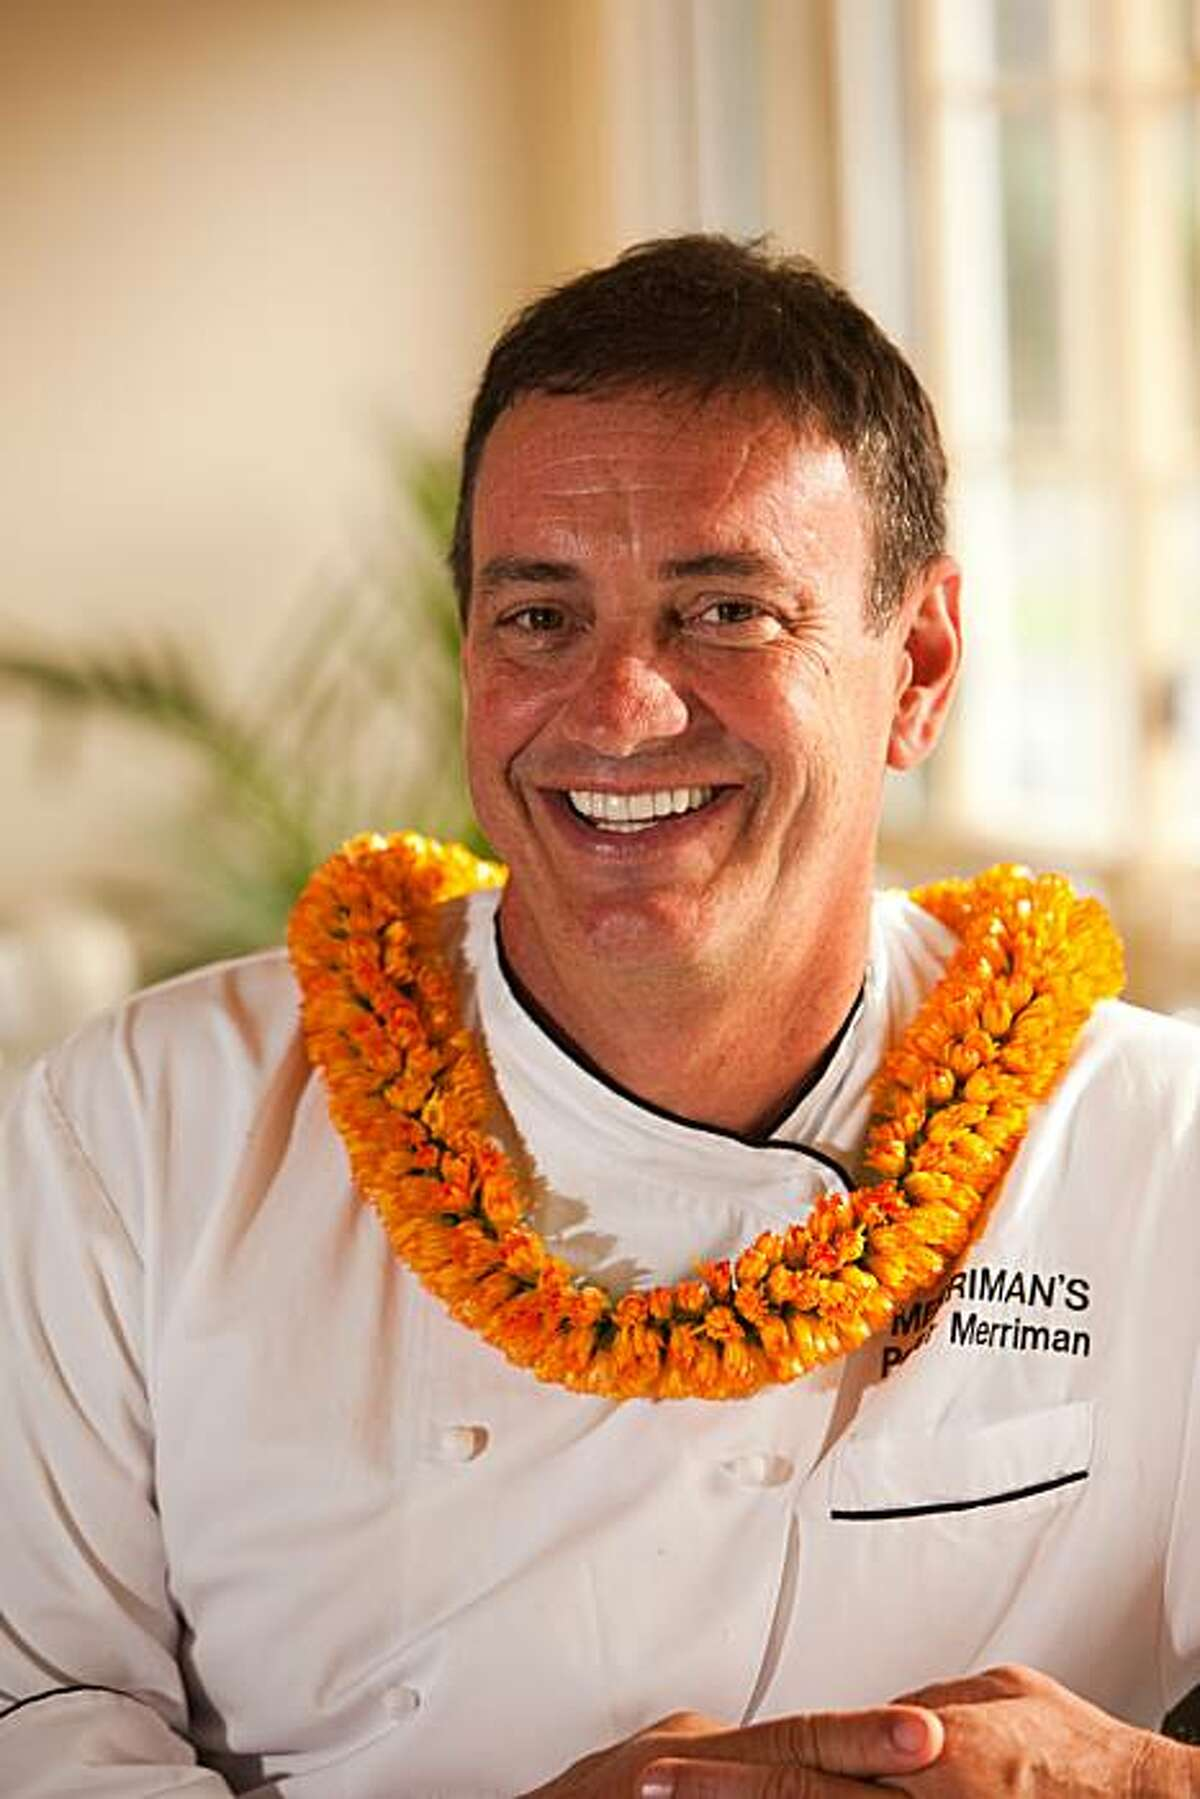 Chef Peter Merriman, who lives on Maui and operates restaurants there and on Kaua'i and the Big Islan , is a fan of the hand-crafted foods of his home island.